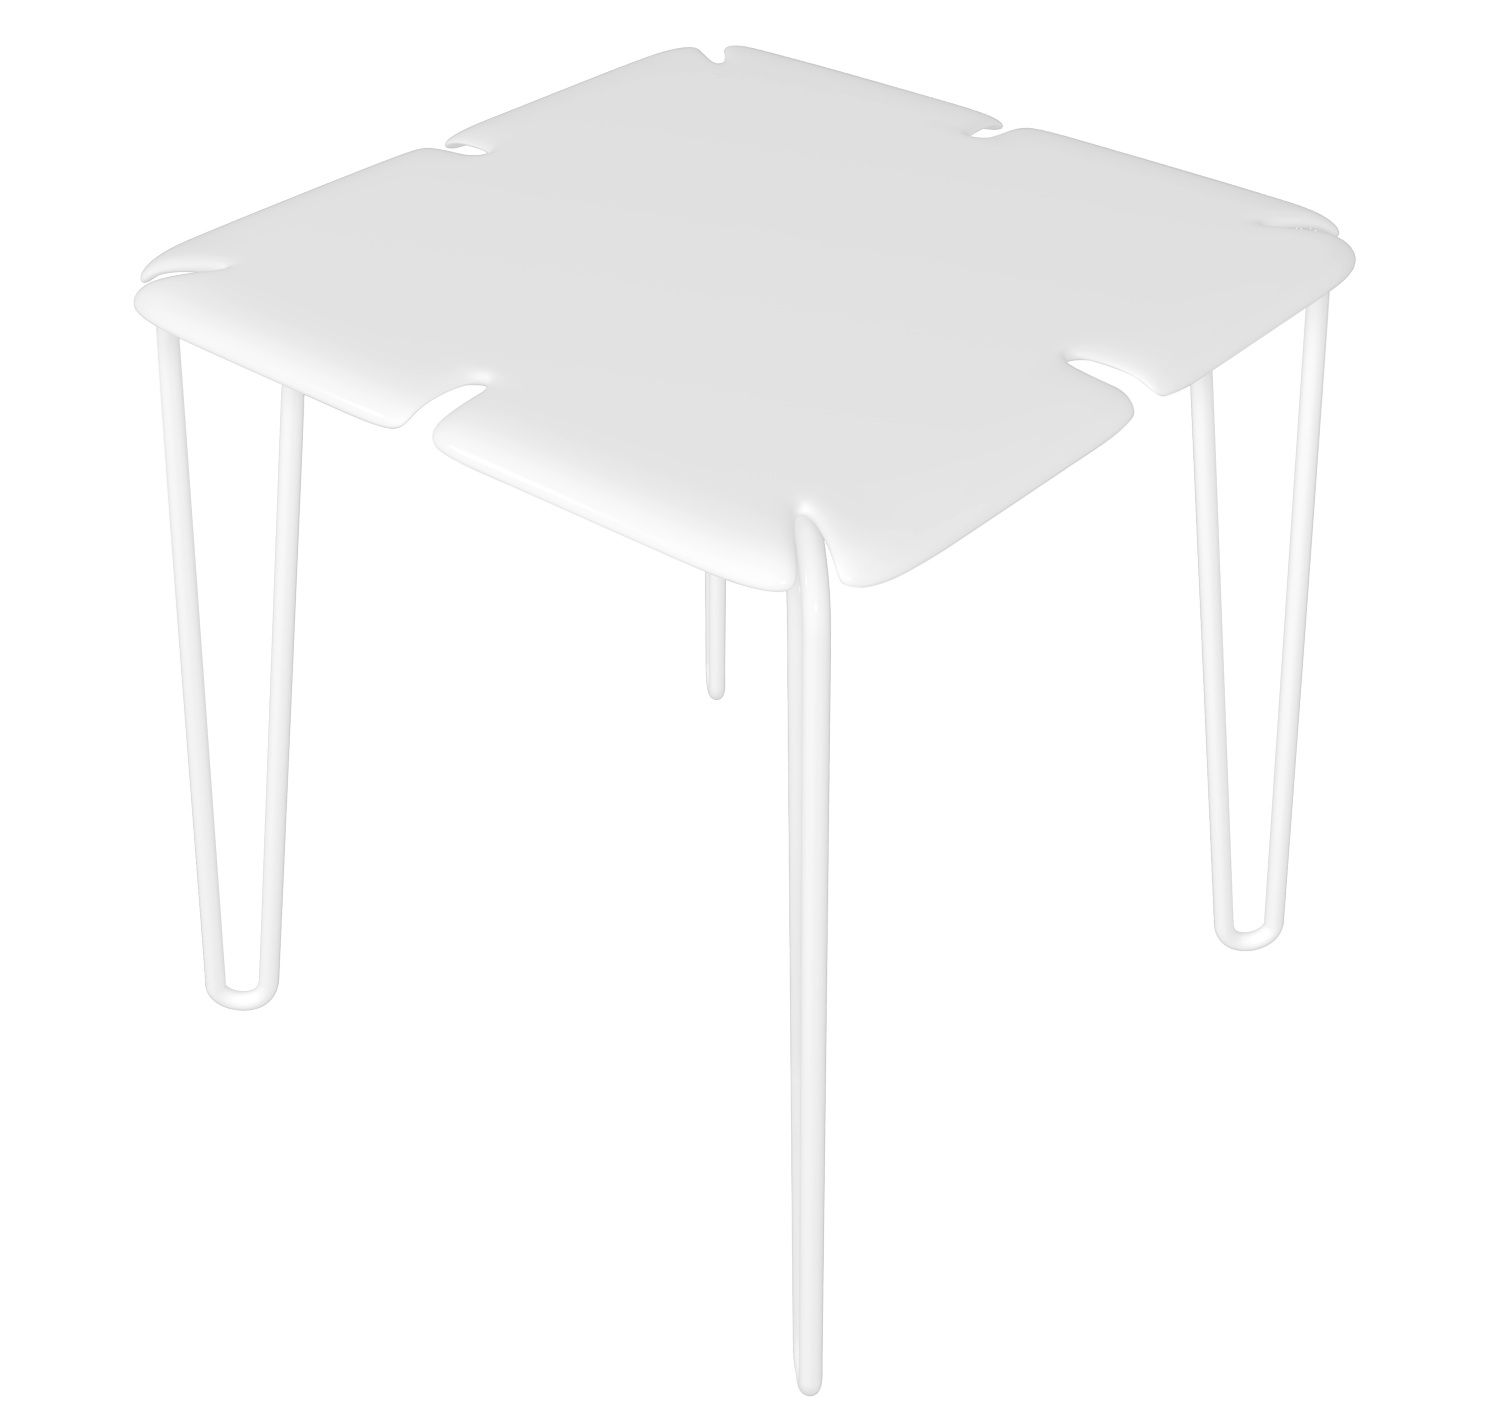 Outdoor - Tables de jardin - Table carrée Chips / 78 x 78 cm - MyYour - Blanc - Corian - Acier inoxydable peint, Corian